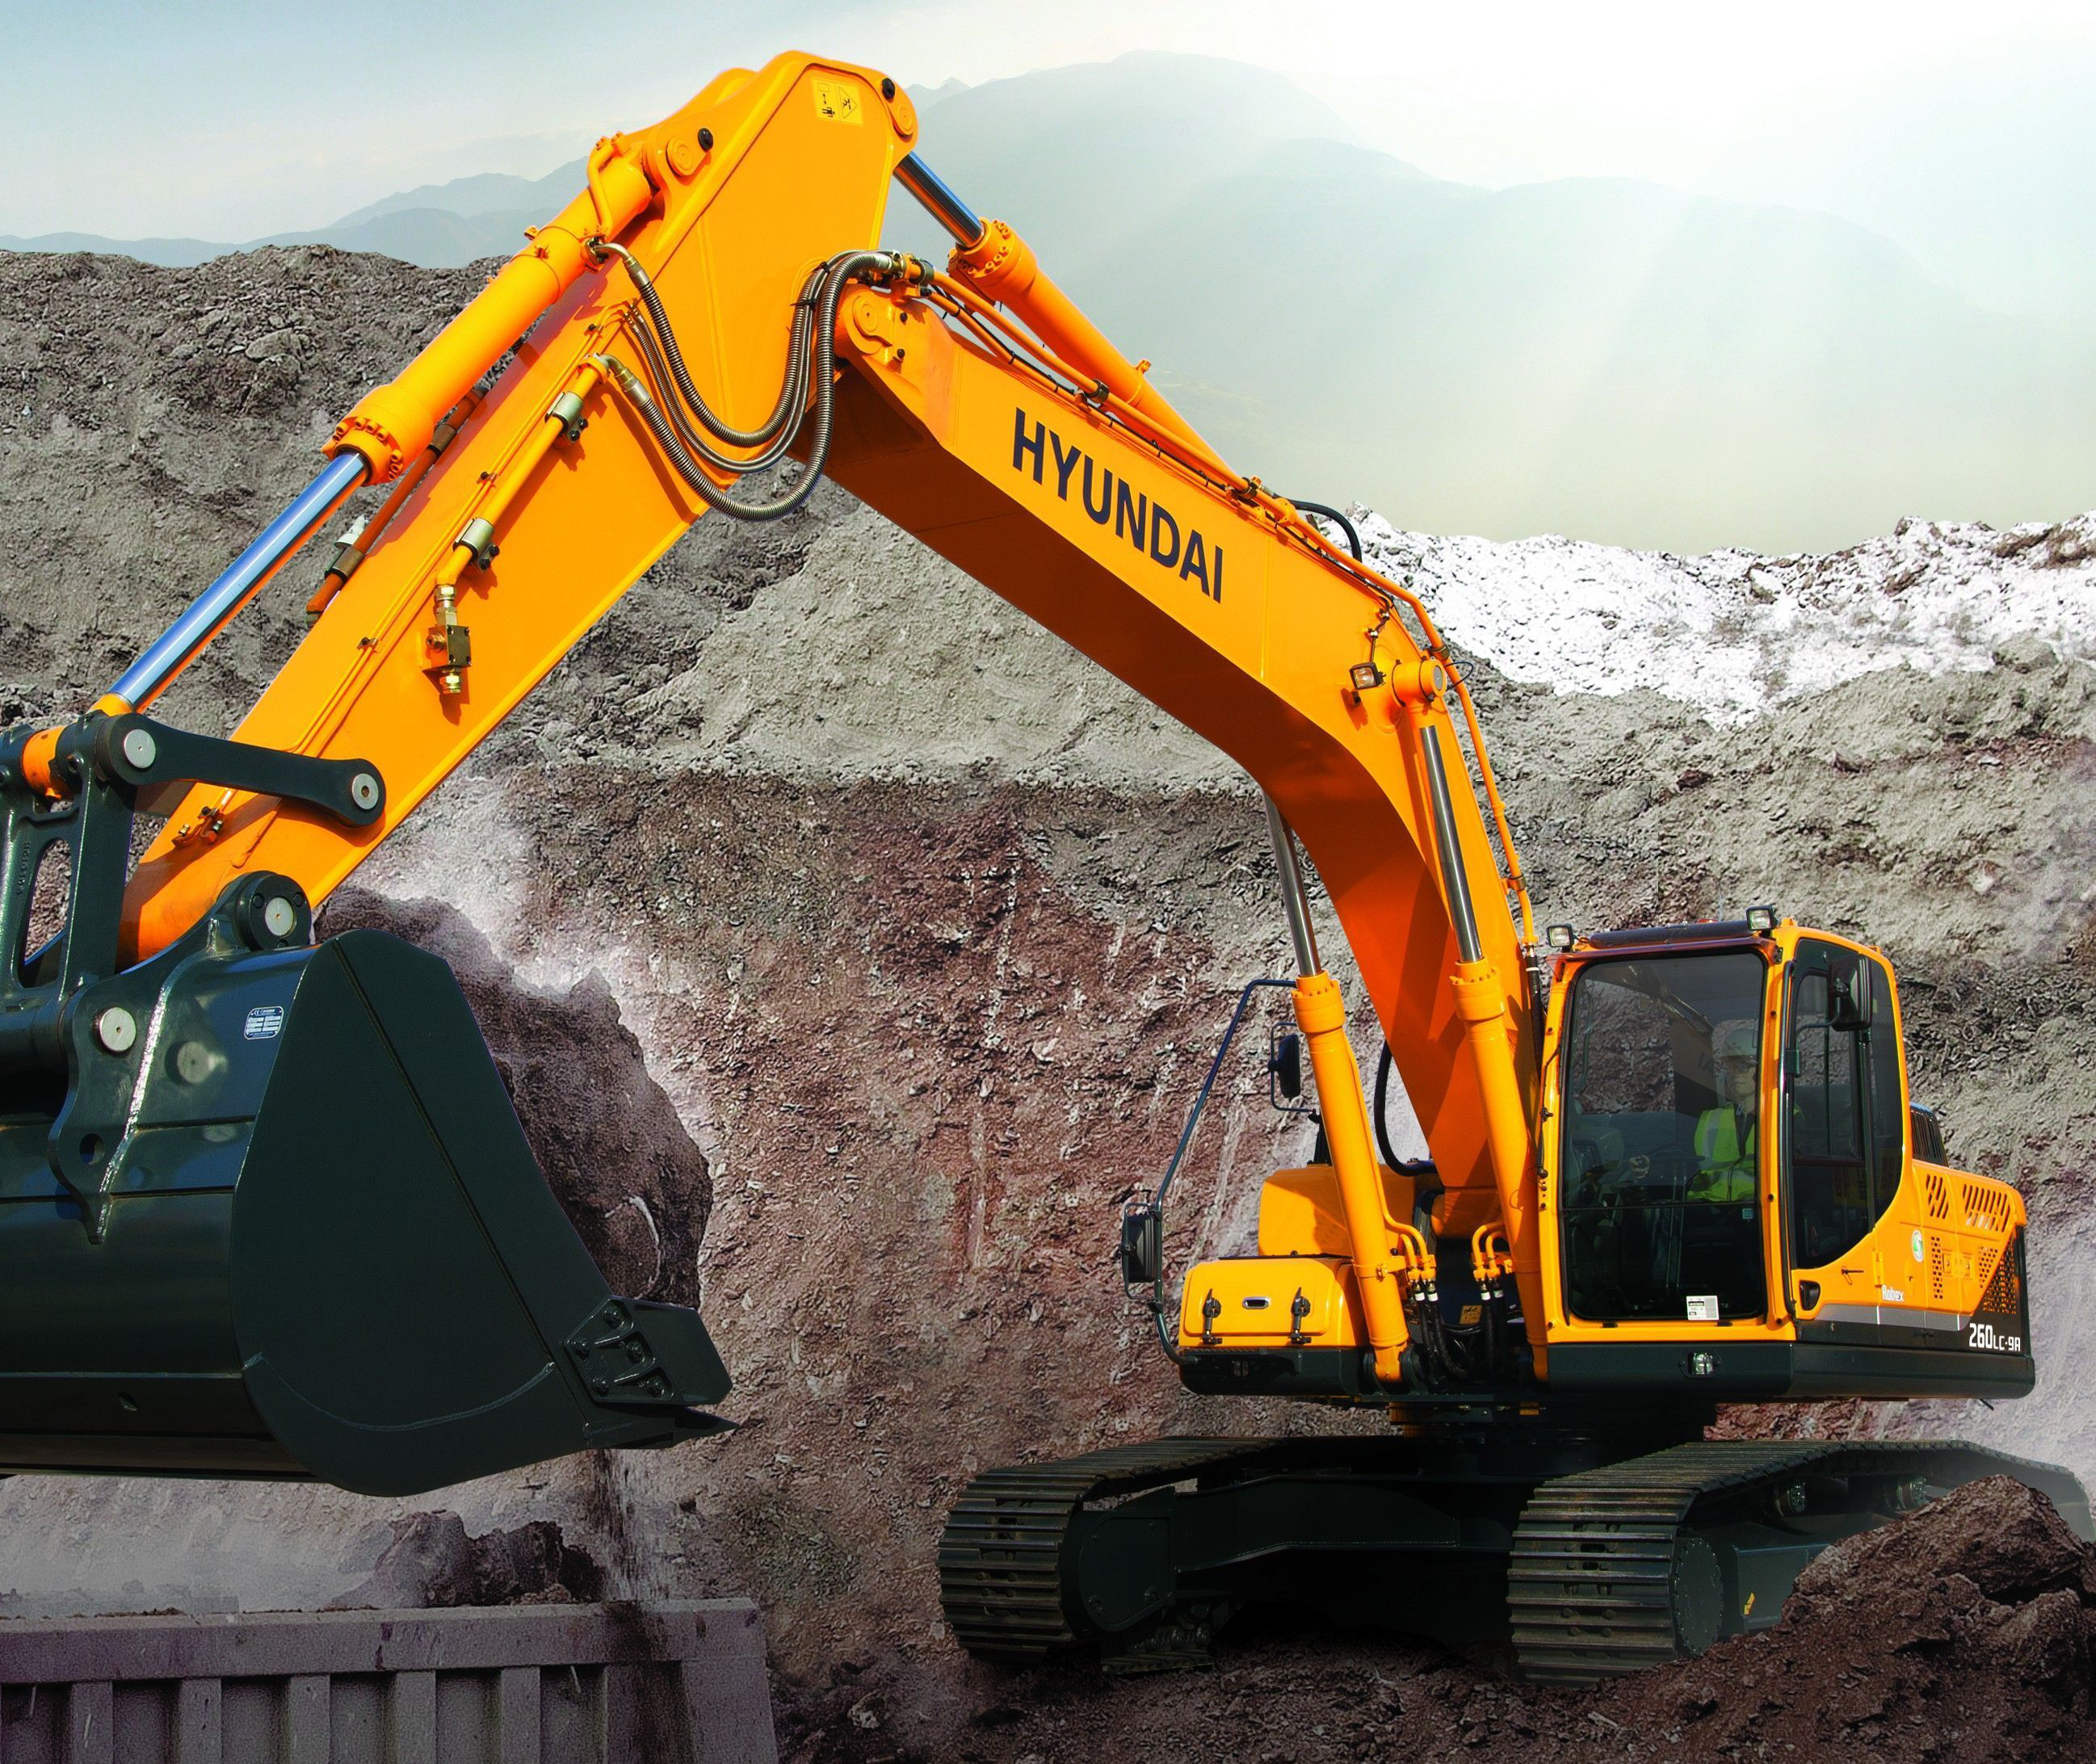 Product Of The Week Hyundai R260lc 9a Crawler Excavator